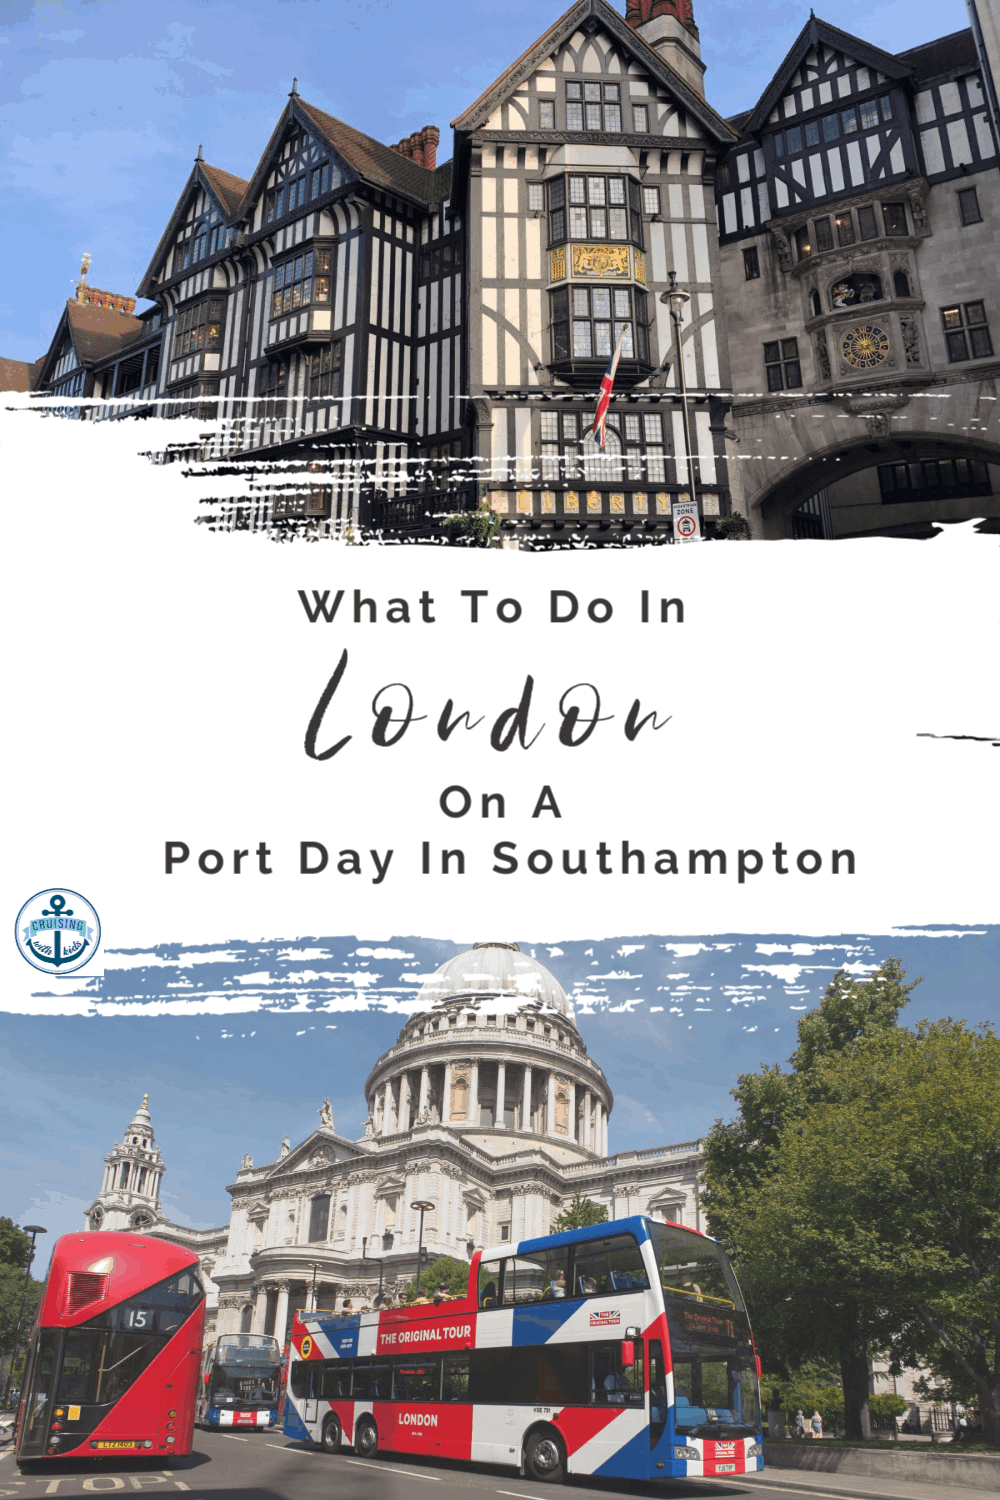 What to do in London on a Port Day in Southampton